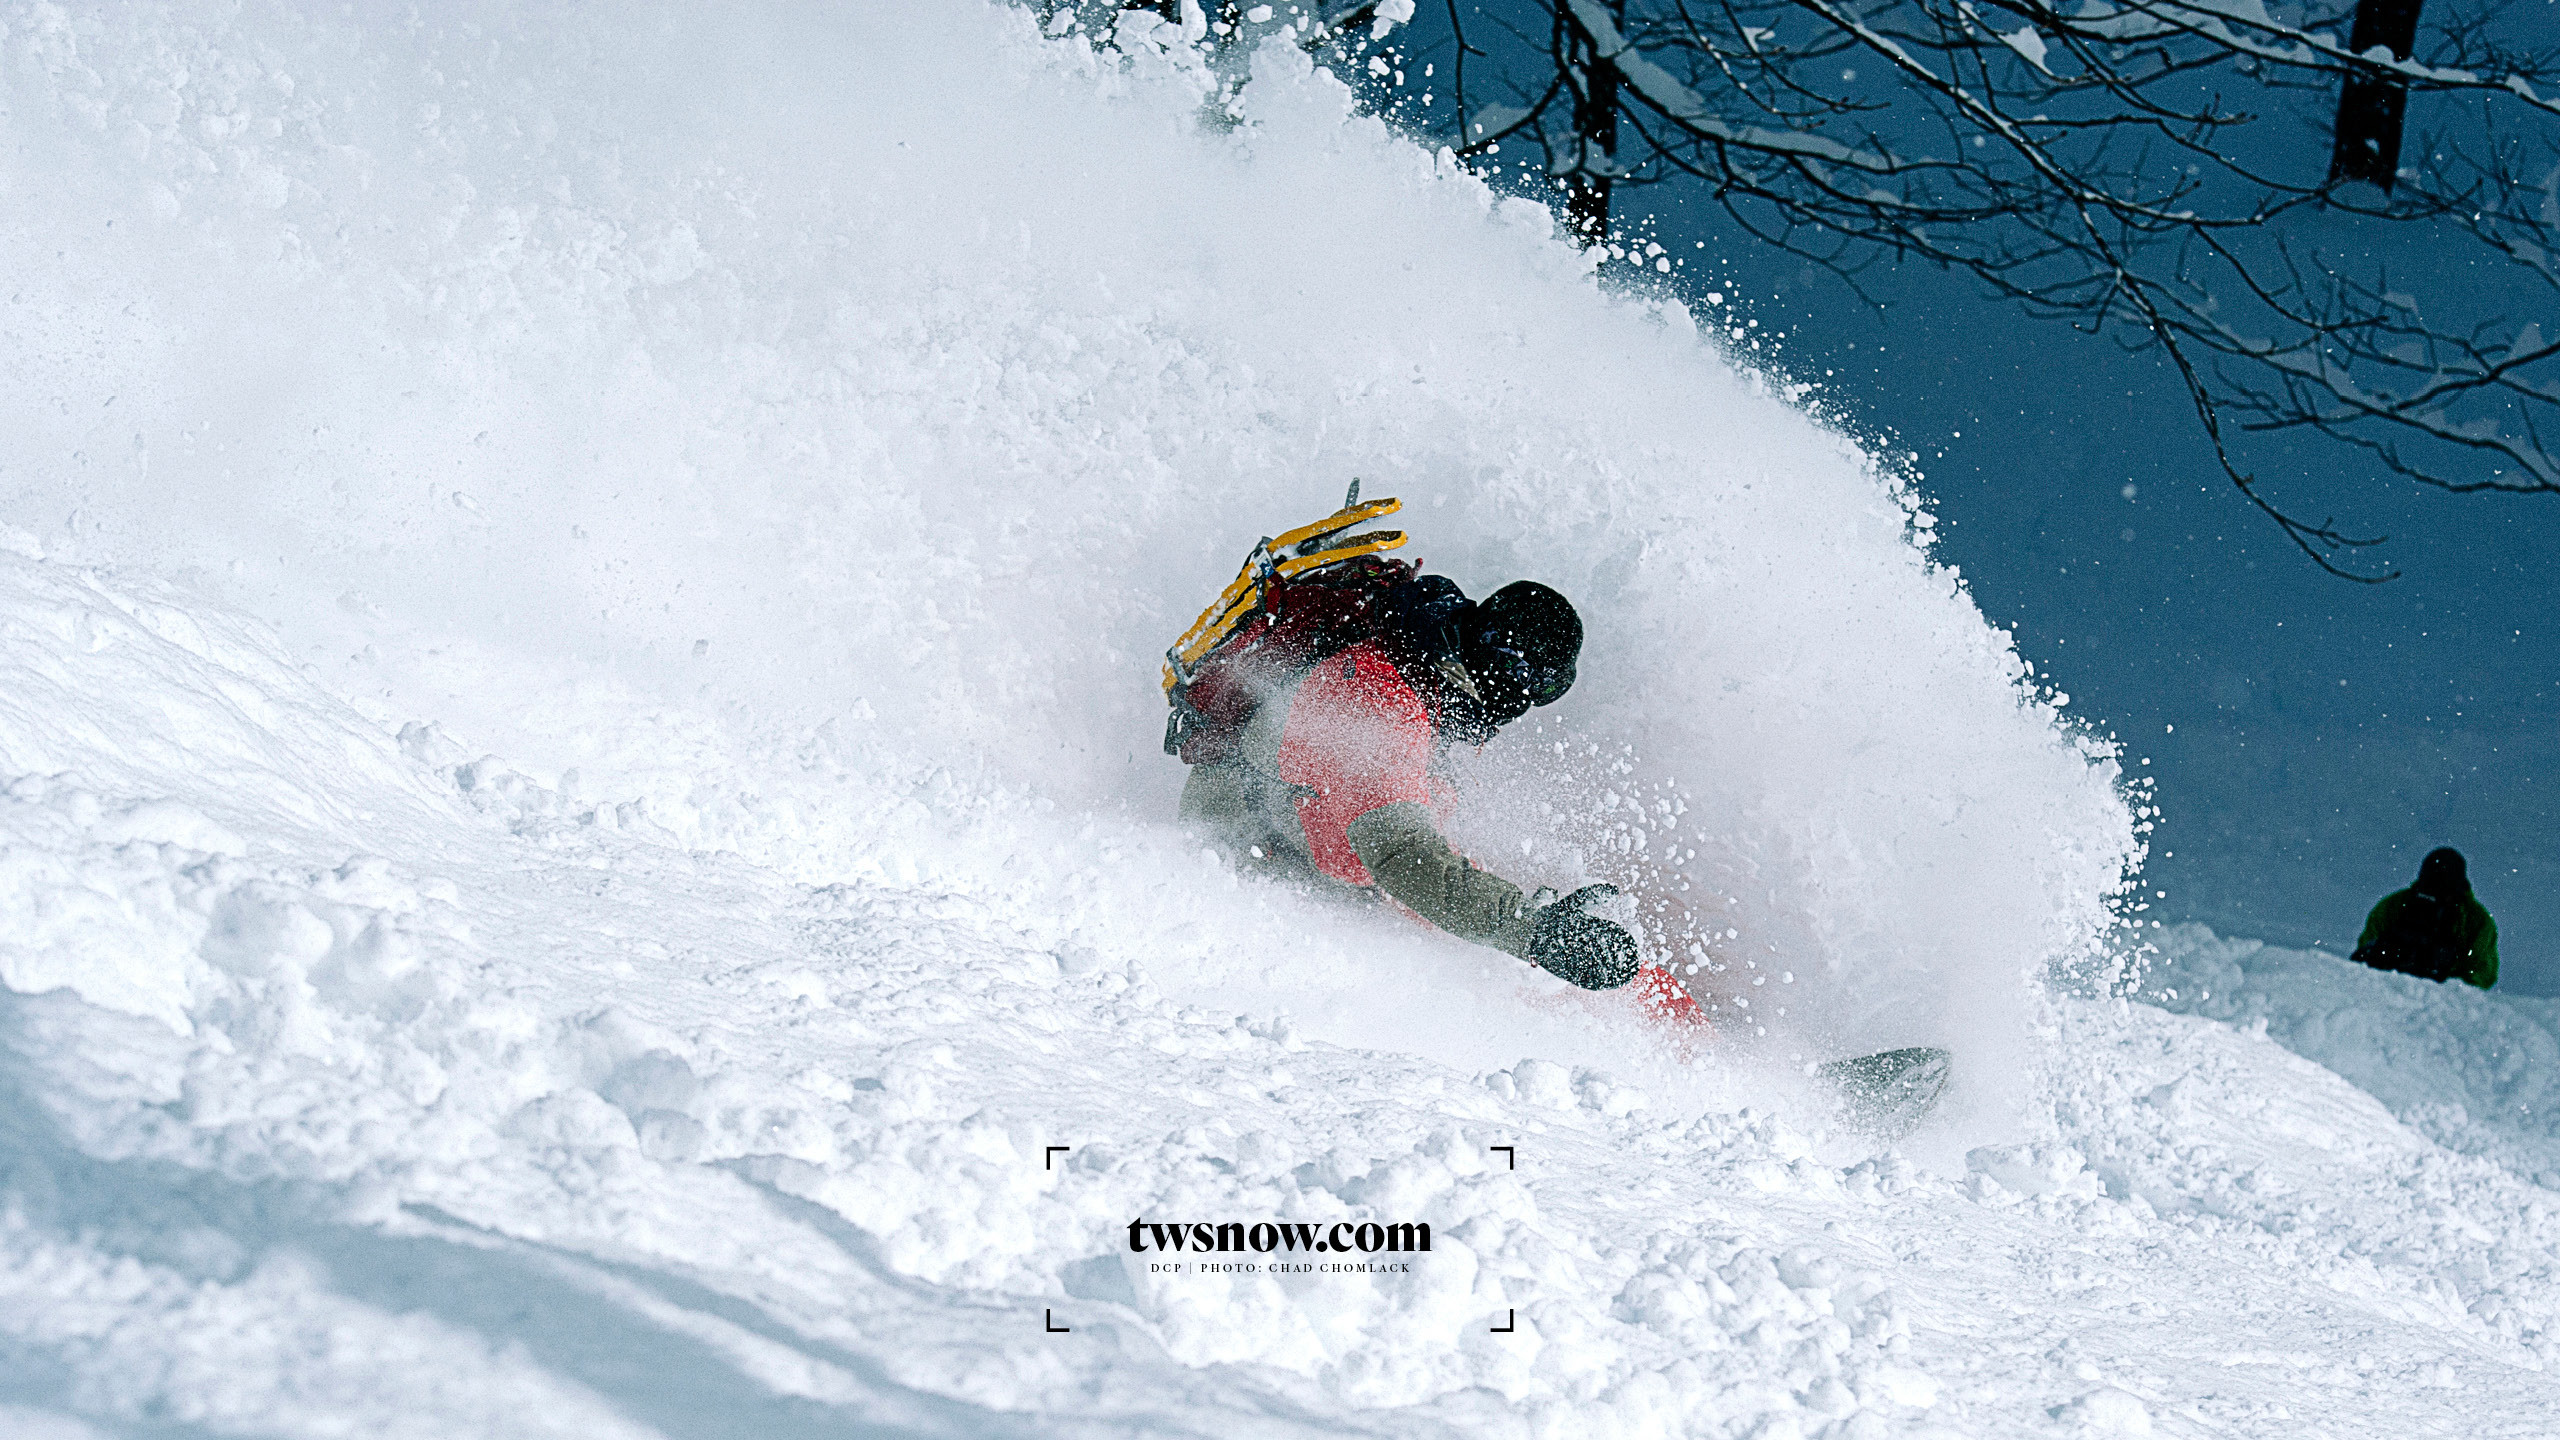 DCP doing what he does best with Japan pow! Photo: Chad Chomlack